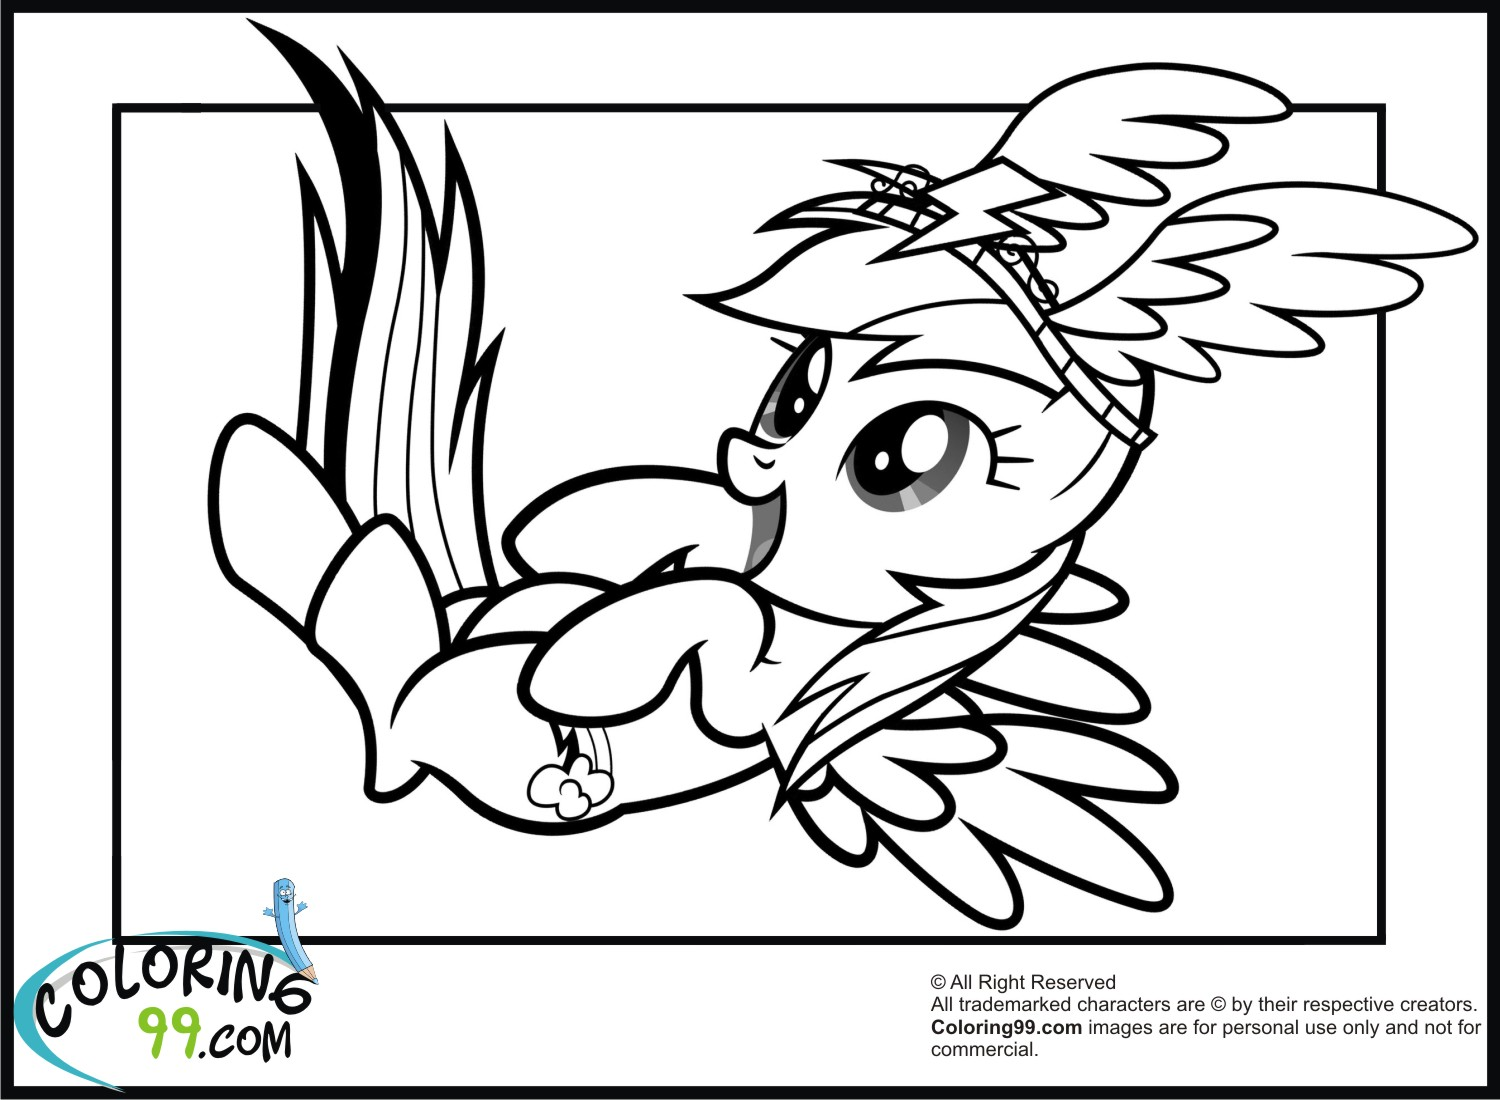 dash coloring pages - photo#5